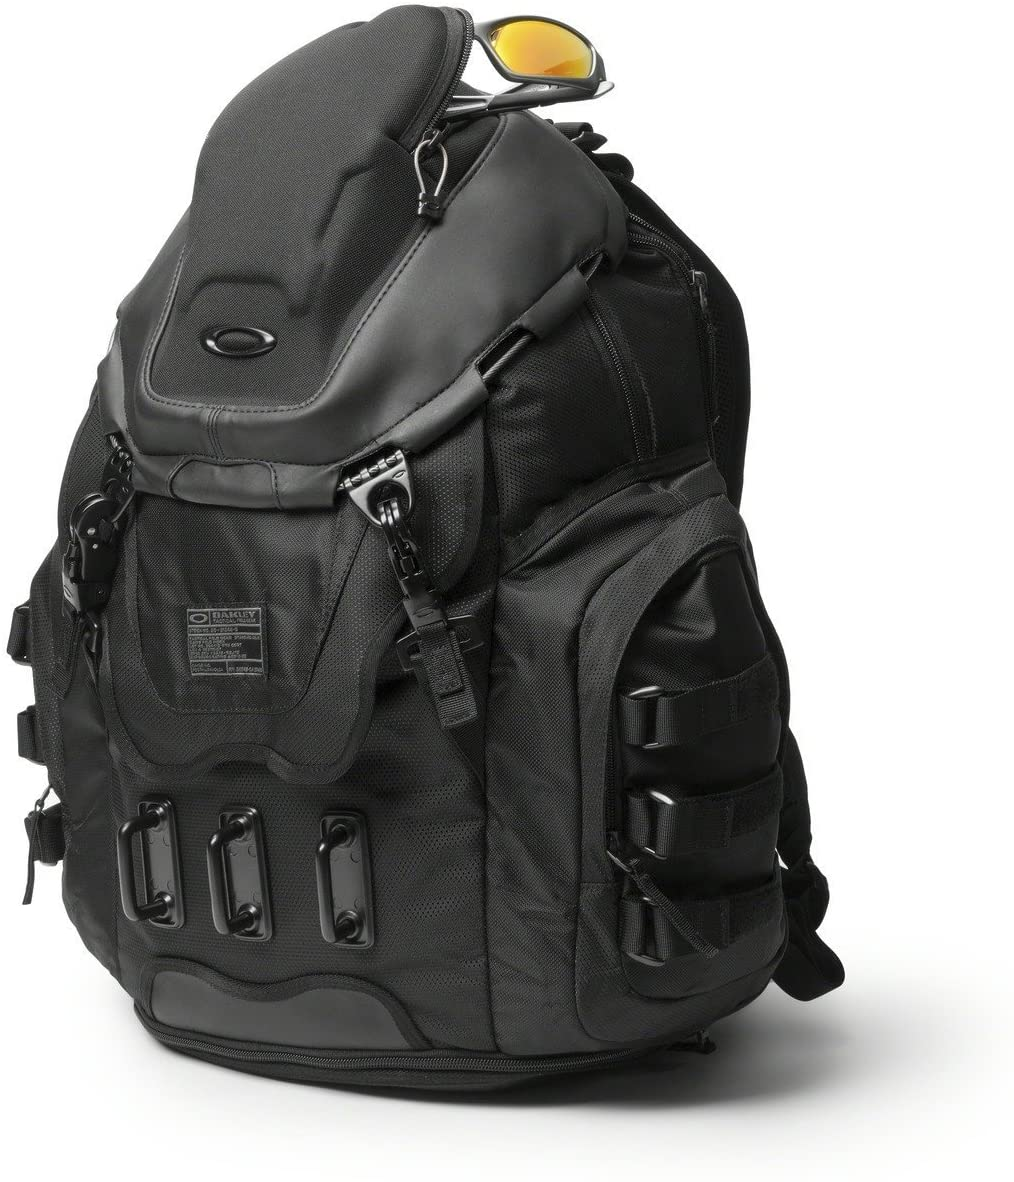 oakley bathroom sink backpack review